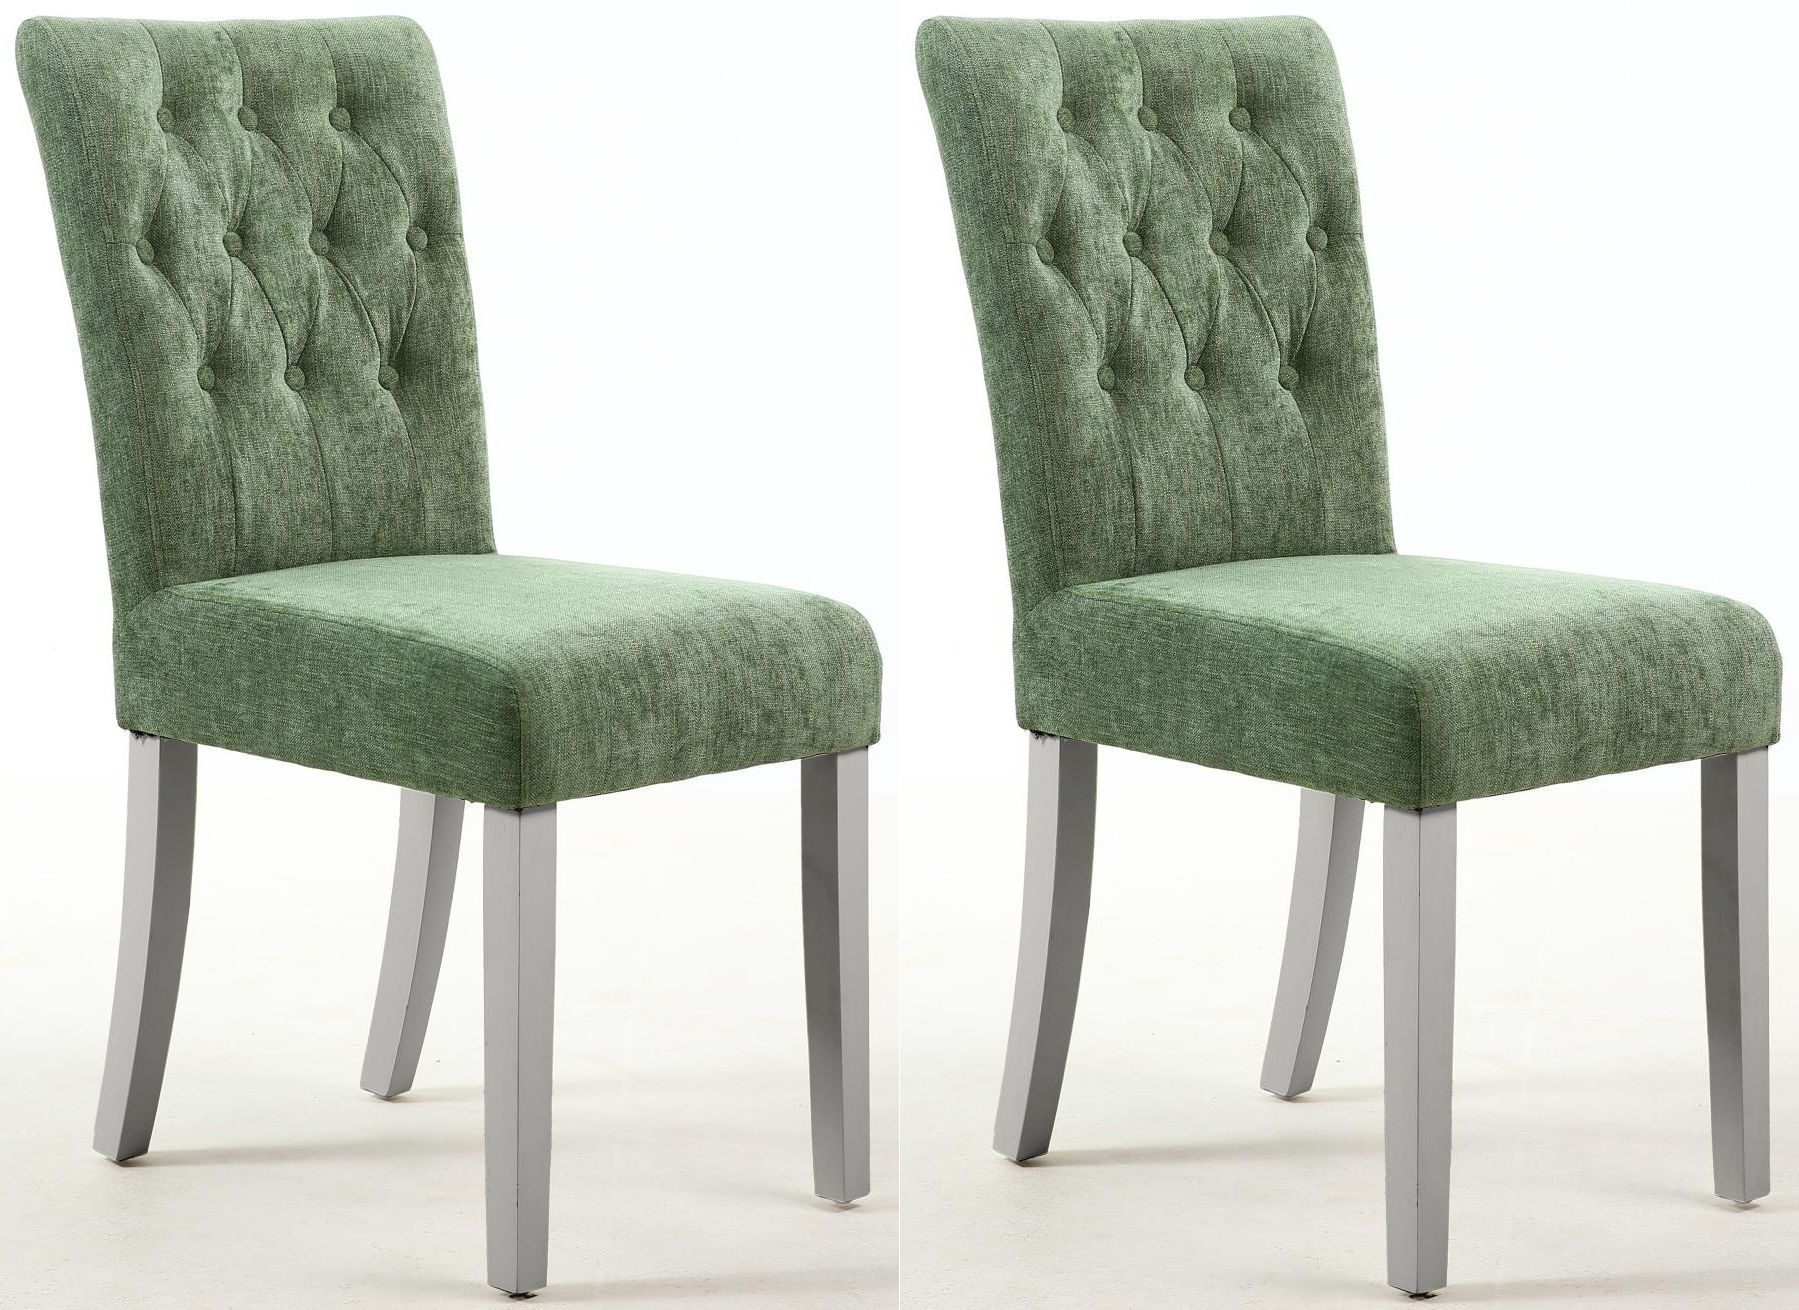 Shankar Diamond Olive Green Chenille Effect Fabric Tufted Accent Dining Chair With Grey Legs Pair